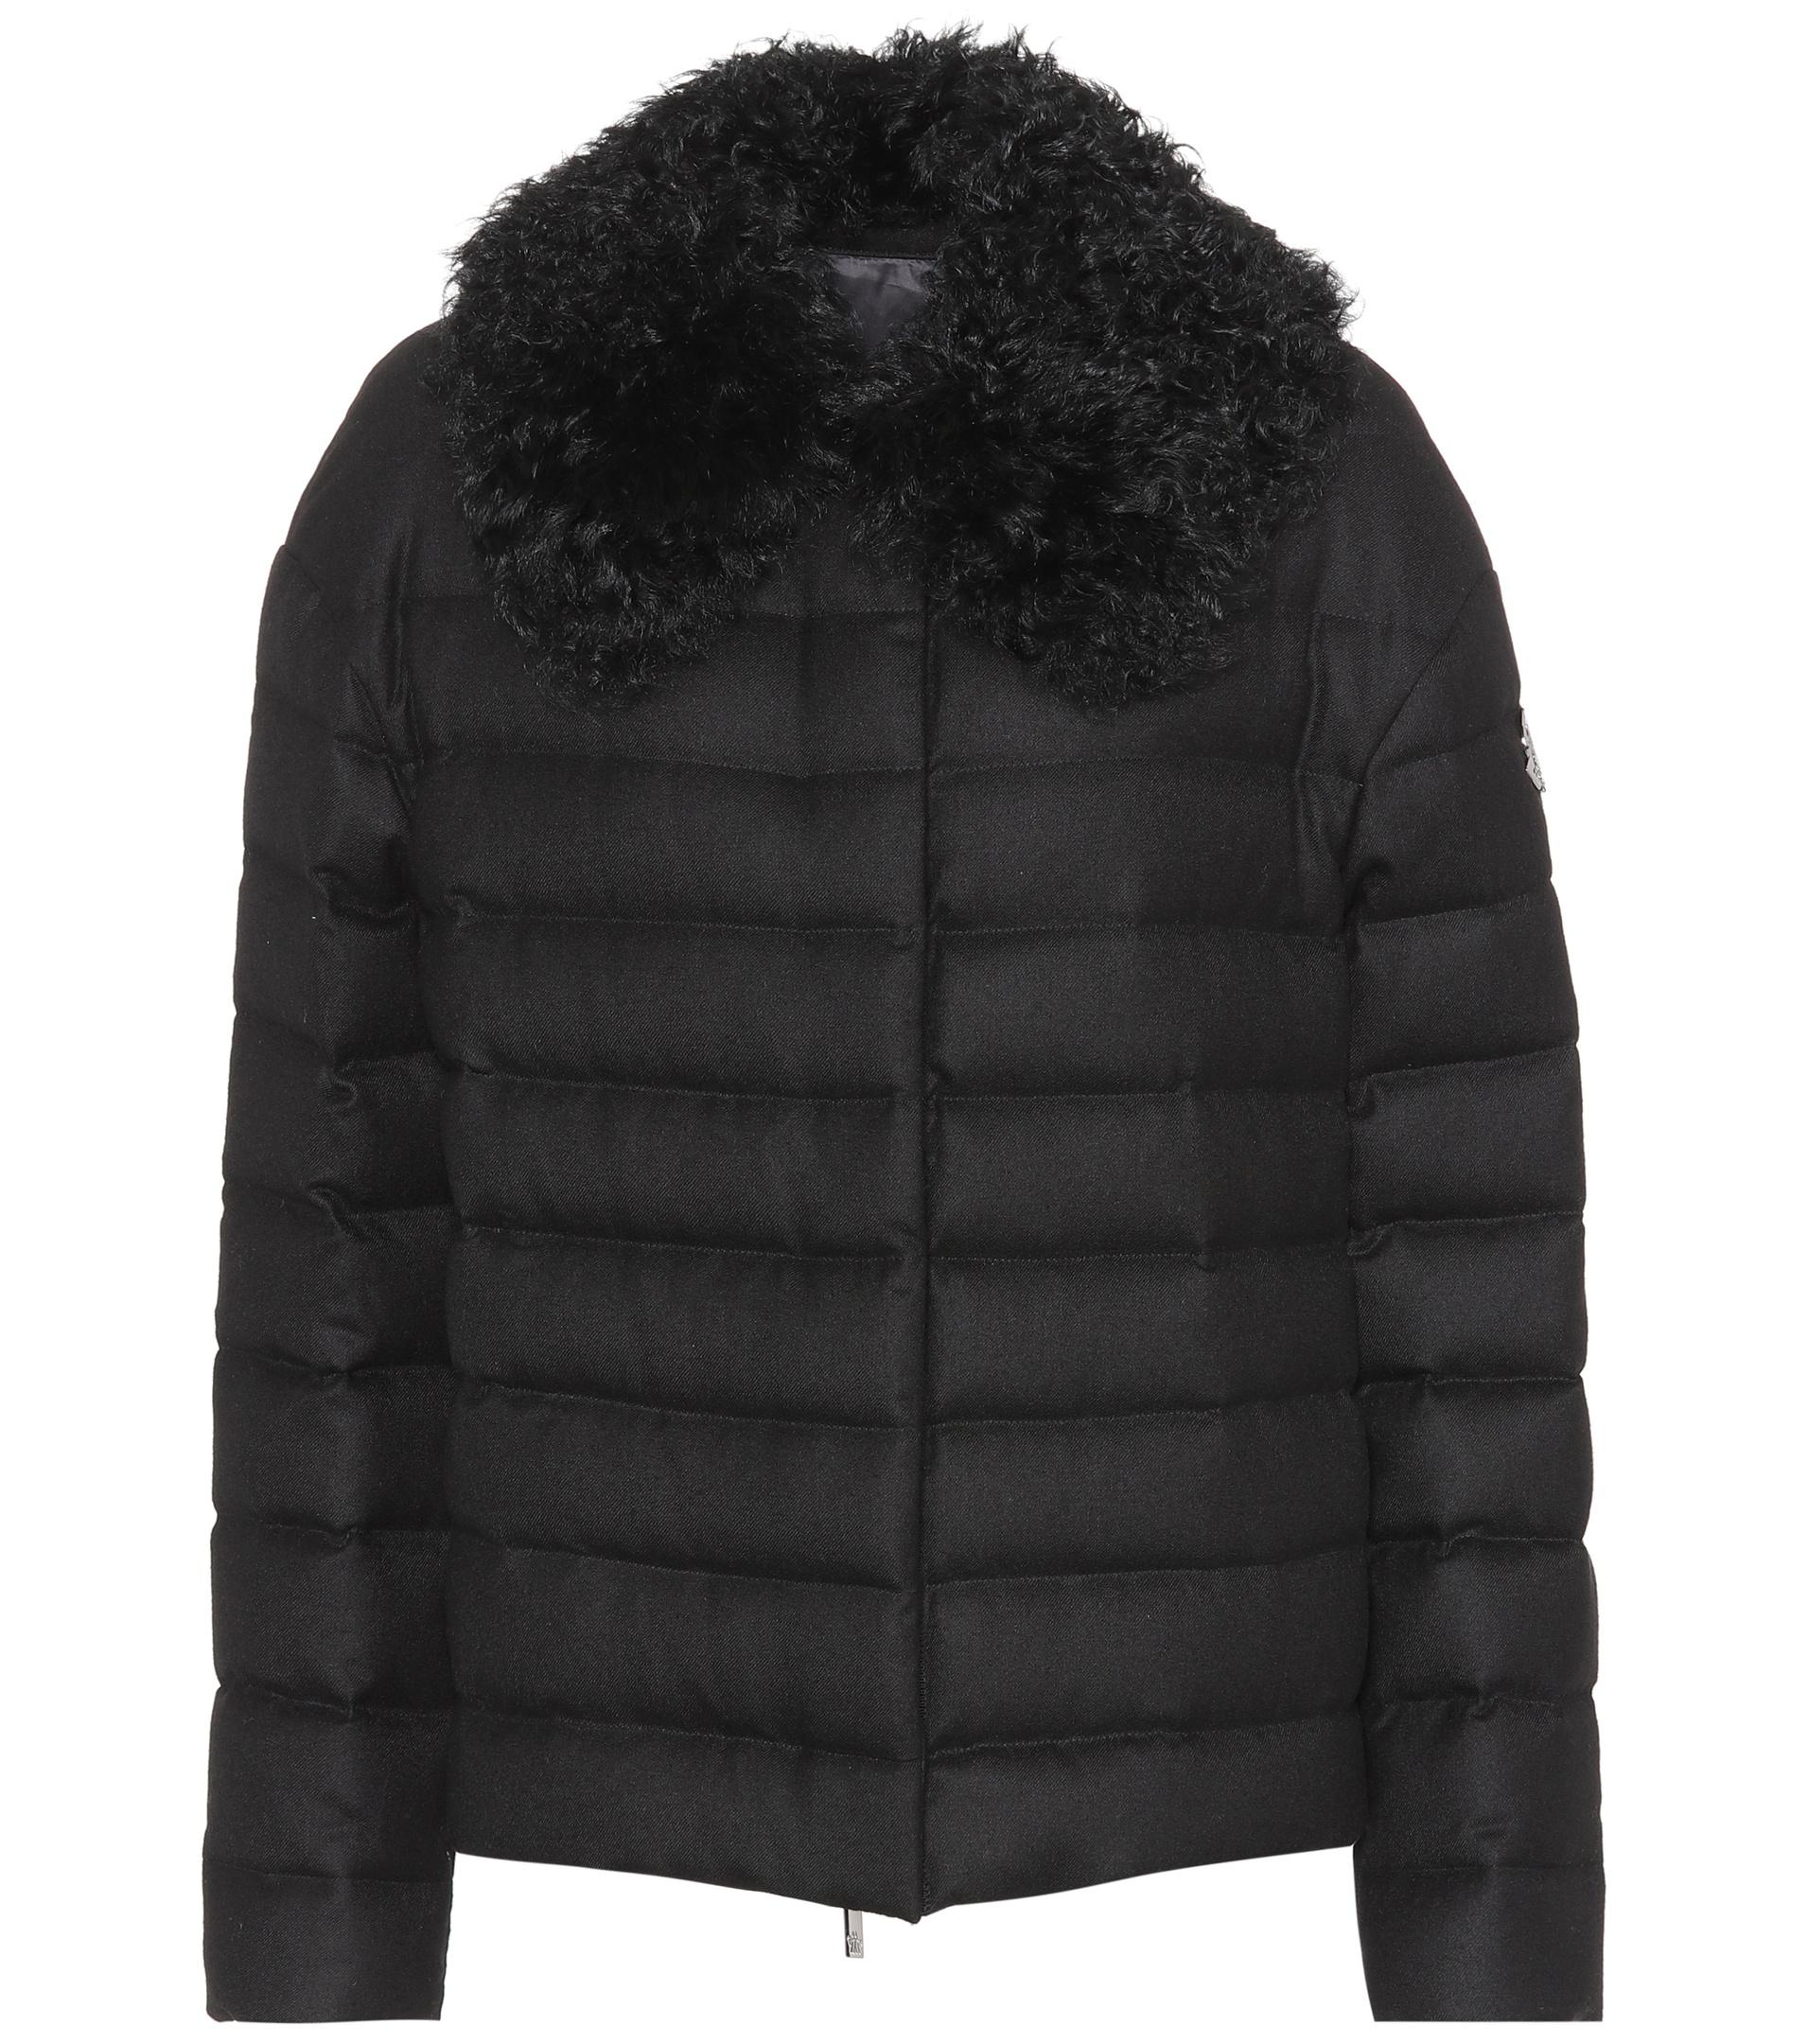 Moncler Baker Down-filled Cashmere Jacket in Black - Lyst 99e171fc0